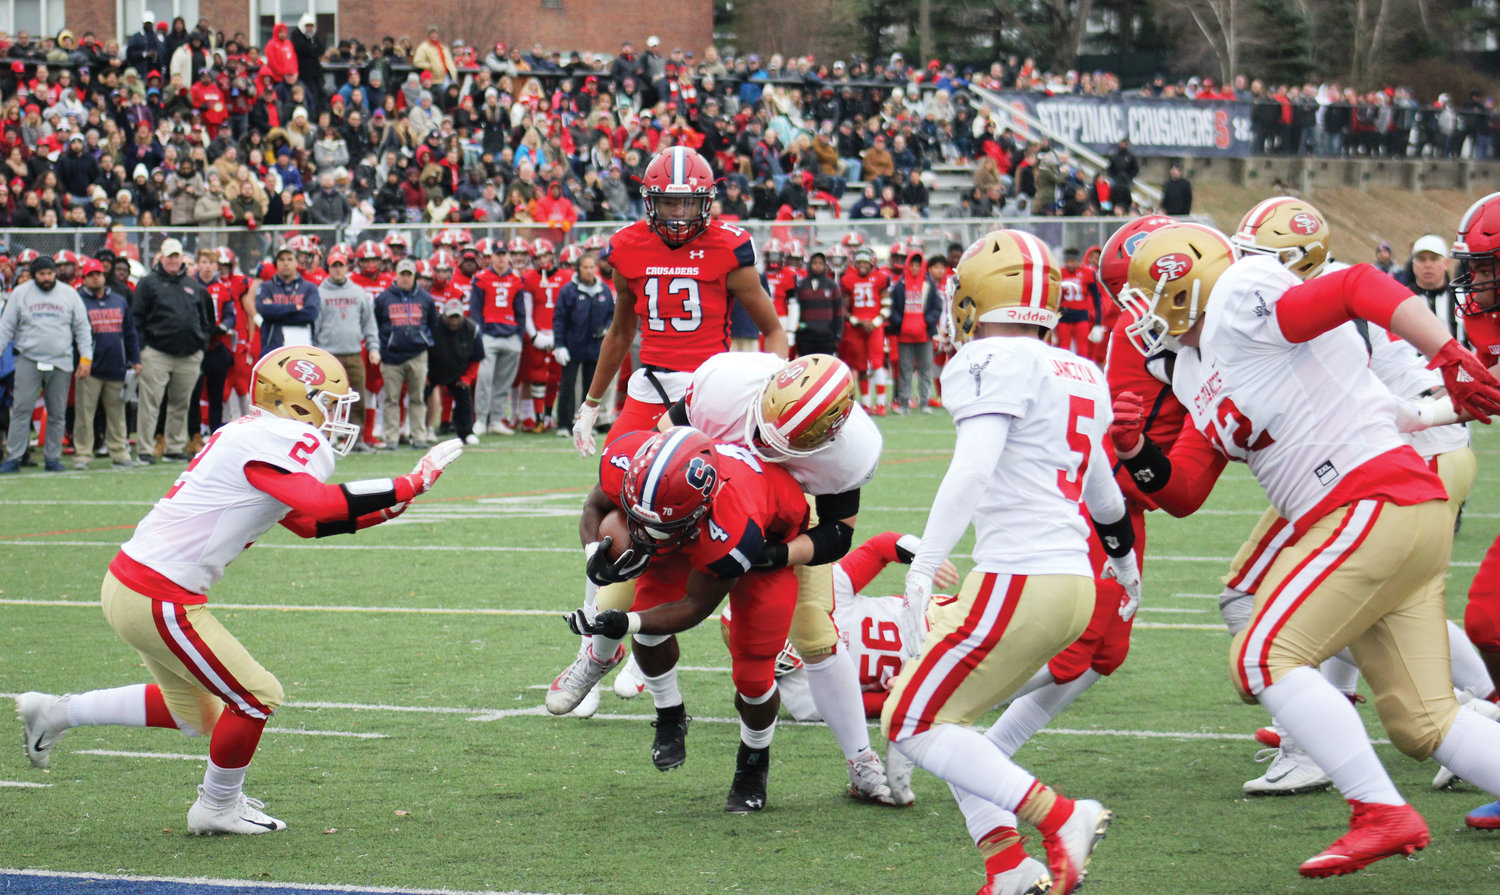 Malik Grant carried the ball for some of his game-high 124 rushing yards. Soon after the win, the senior running back was one of nine Crusaders to earn all-league honors from the Catholic High School Football League of Metropolitan New York.